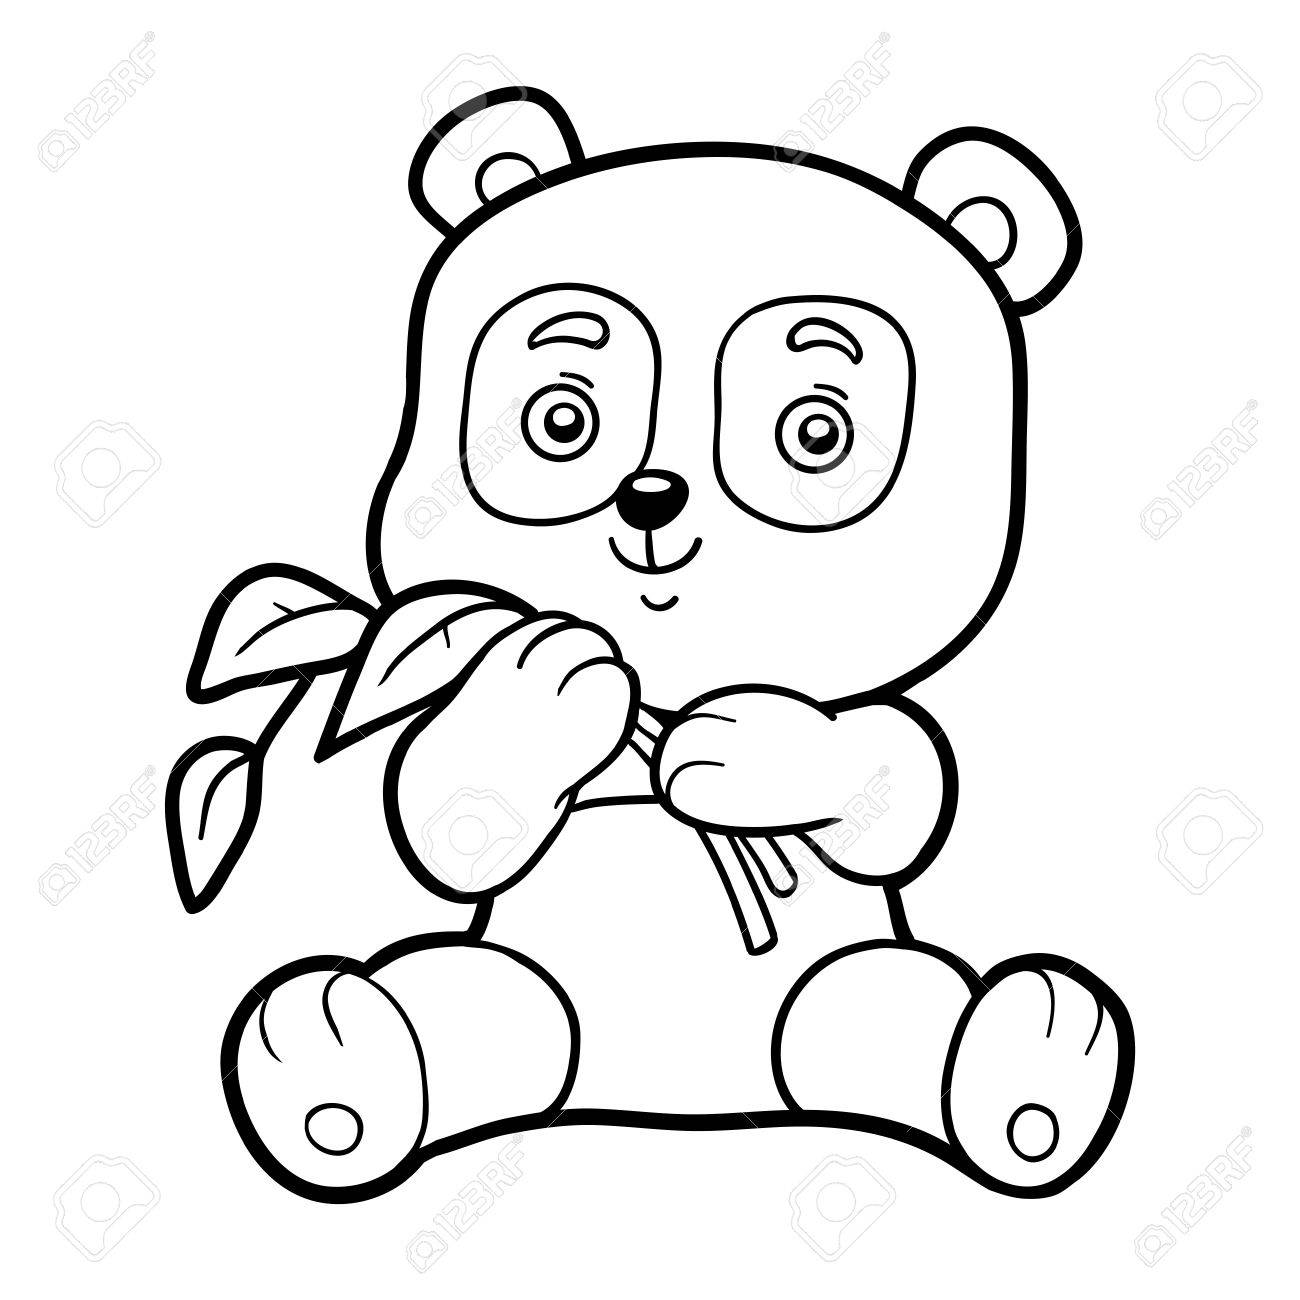 Coloring Book For Children, Coloring Page With Little Panda Royalty ...